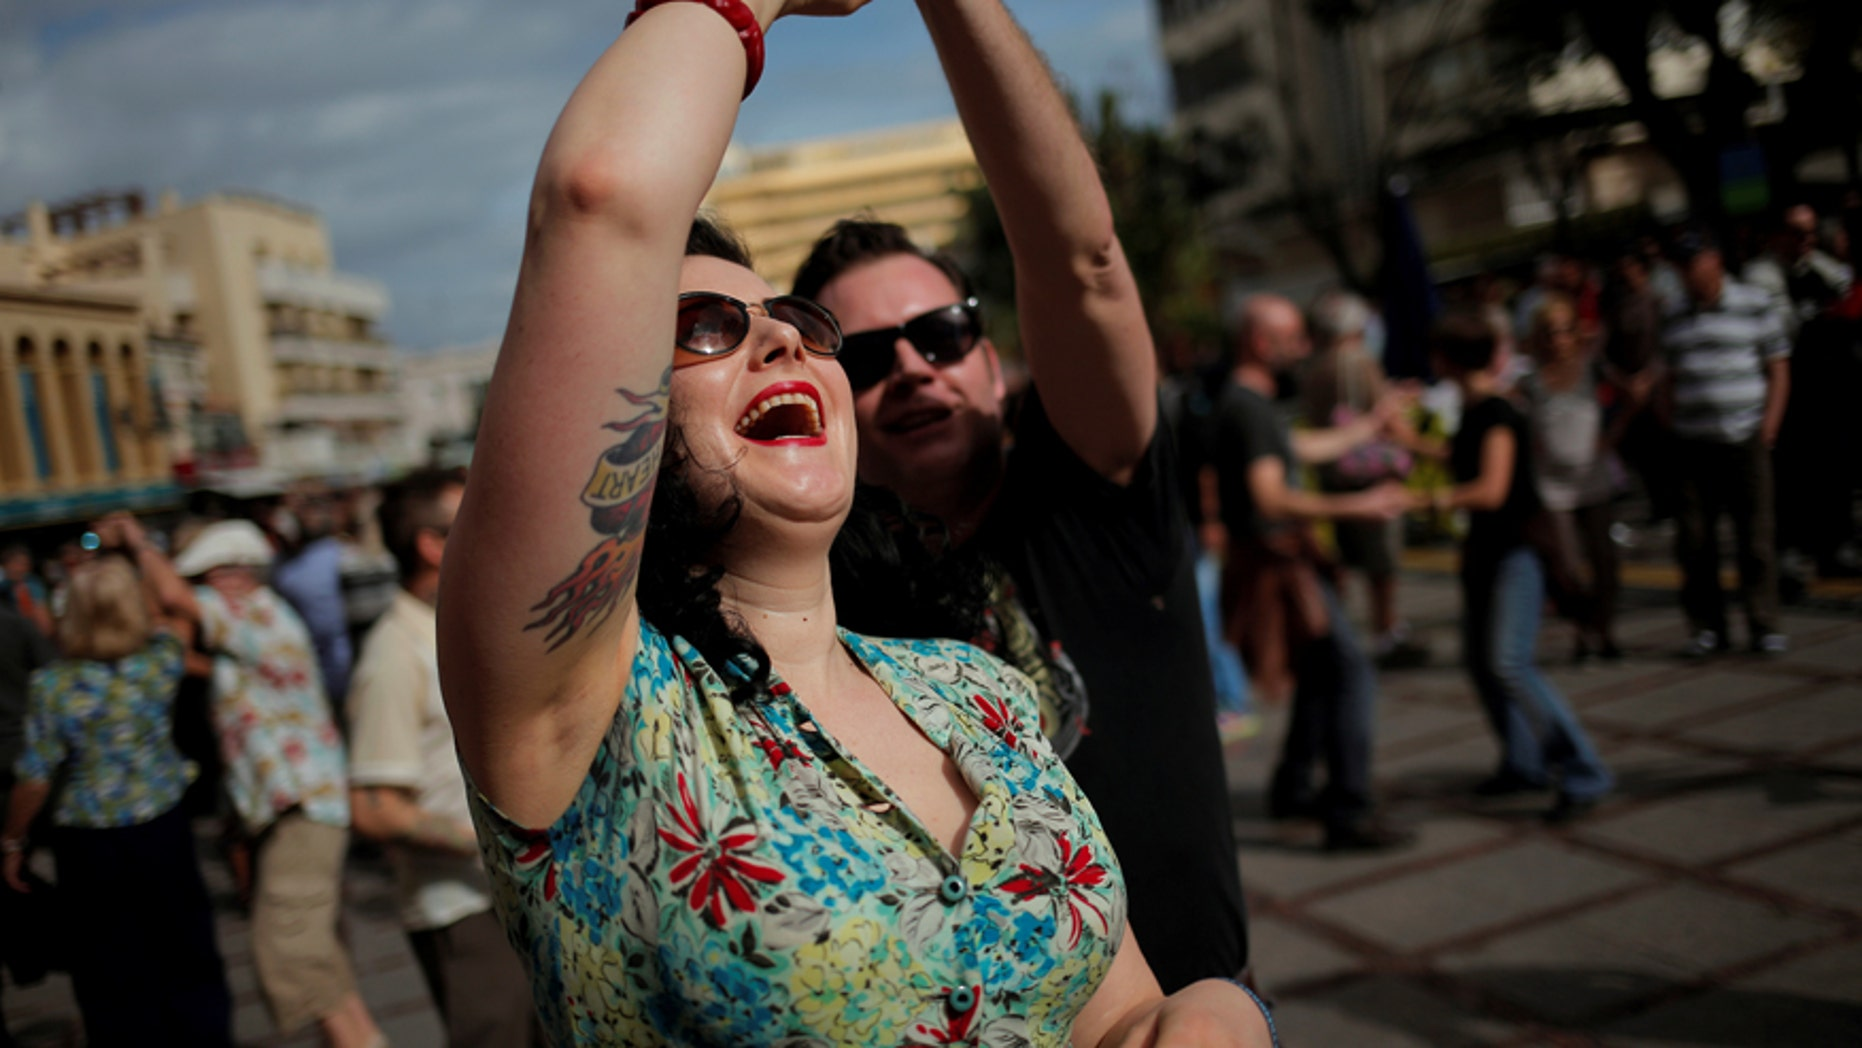 People dressed in fifties-style outfits dance during the 23rd Rockin' Race Jamboree International Festival in downtown Torremolinos, near Malaga, southern Spain February 4, 2017. REUTERS/Jon Nazca - RTX2ZN4R